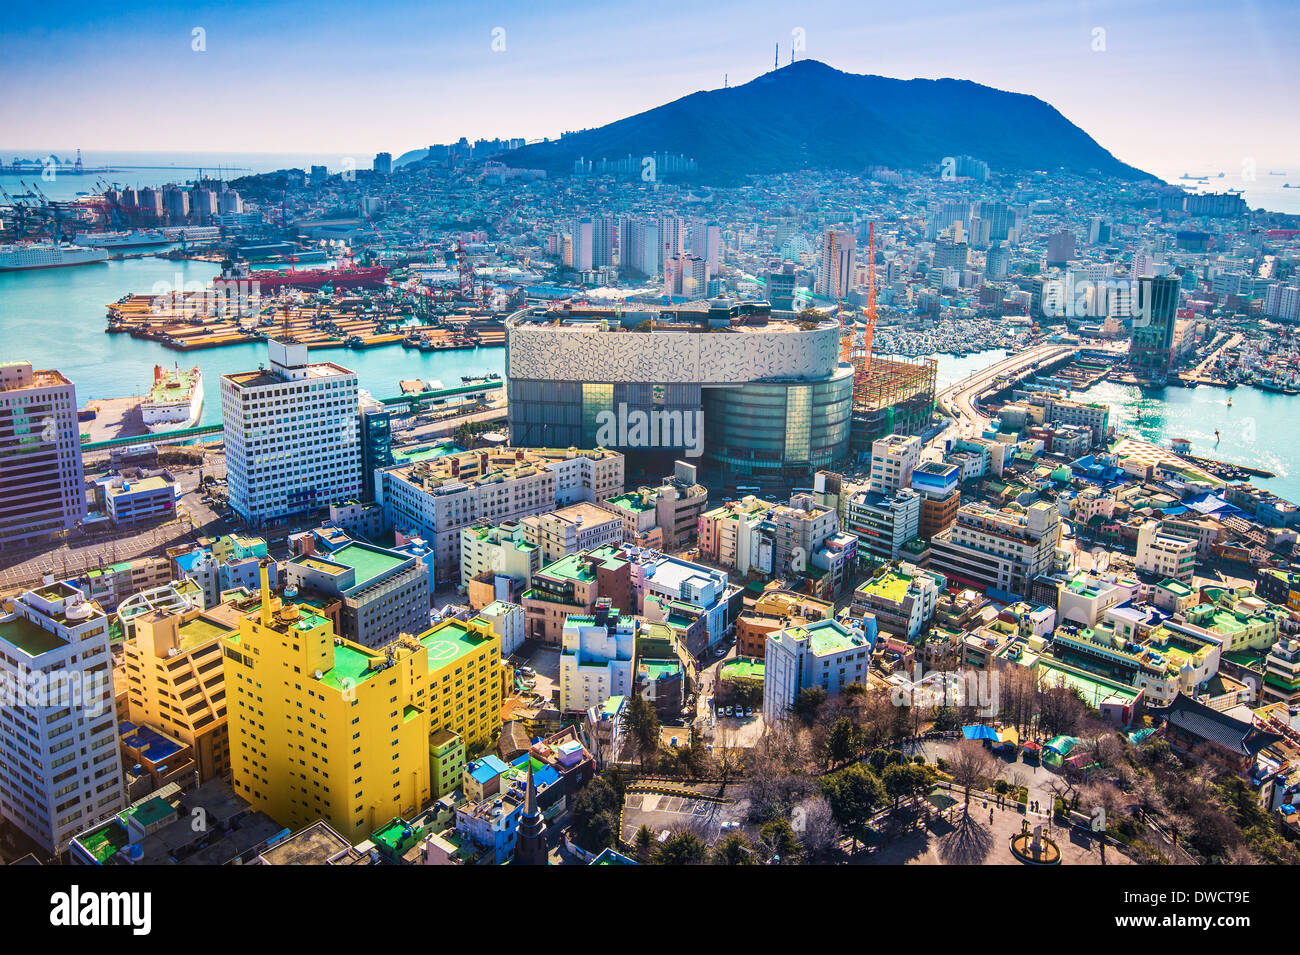 Busan, South Korea cityscape from above. - Stock Image